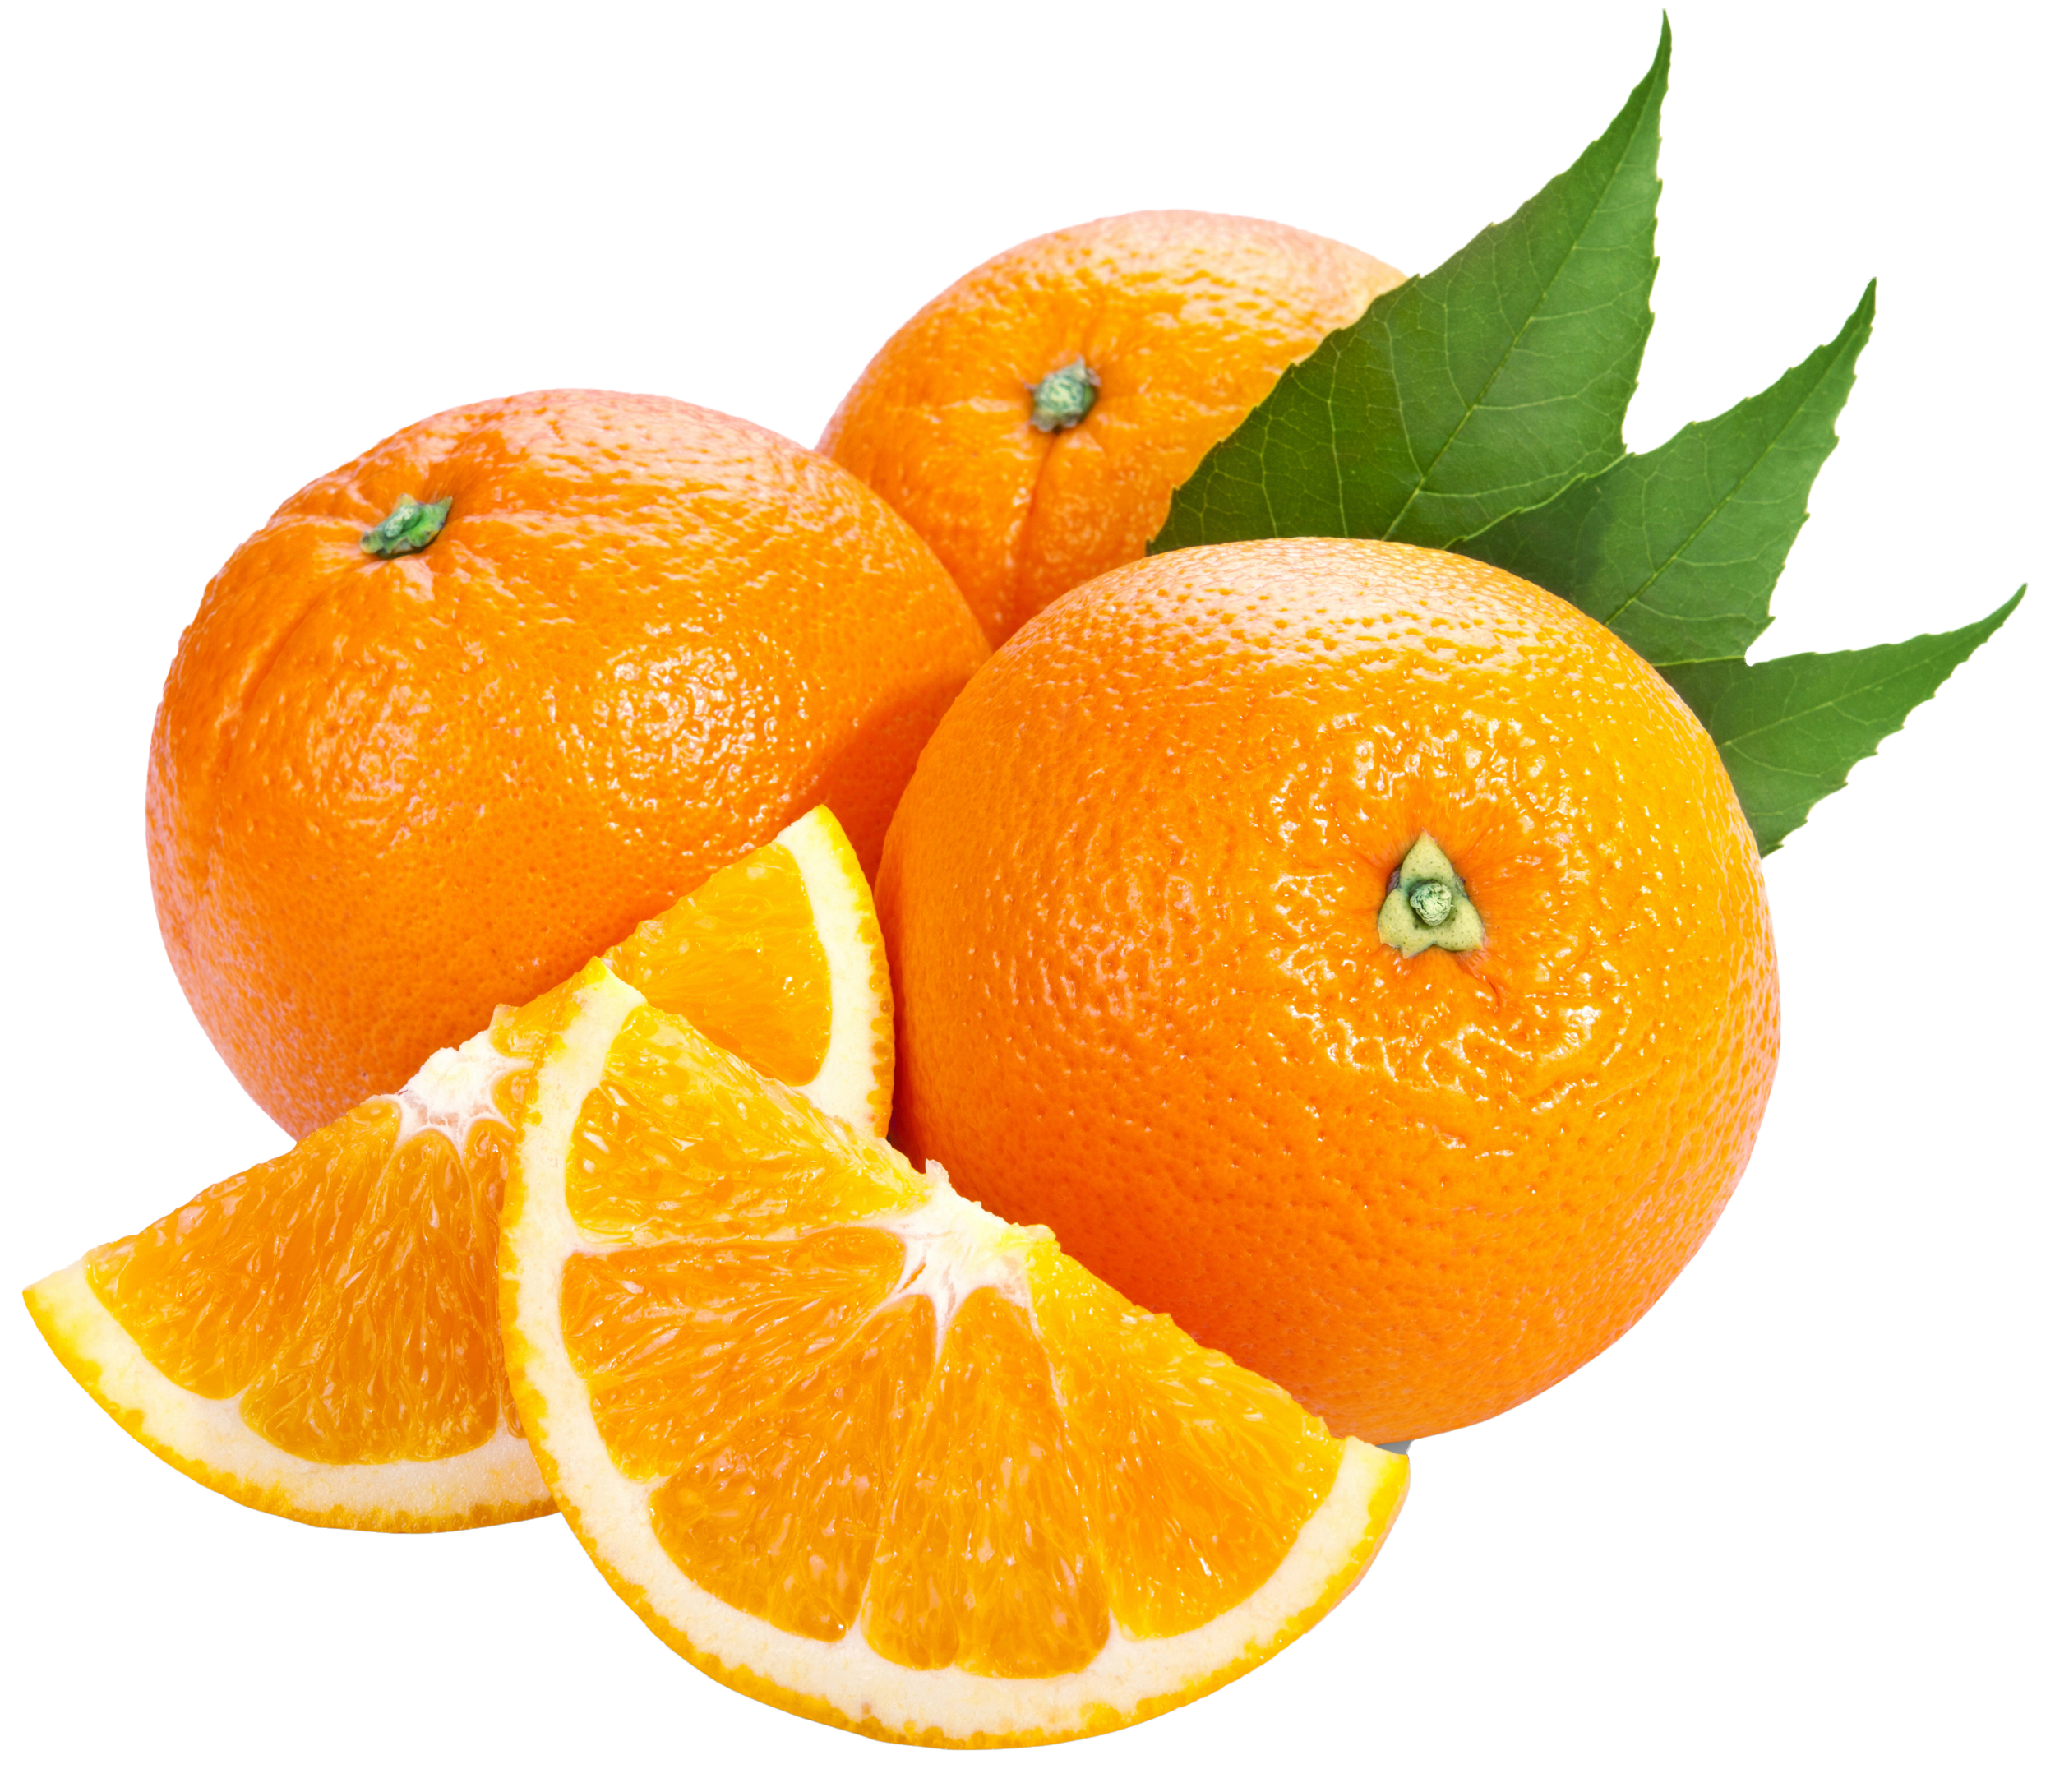 Fruit Free Png Image PNG Image - Fruits PNG HD